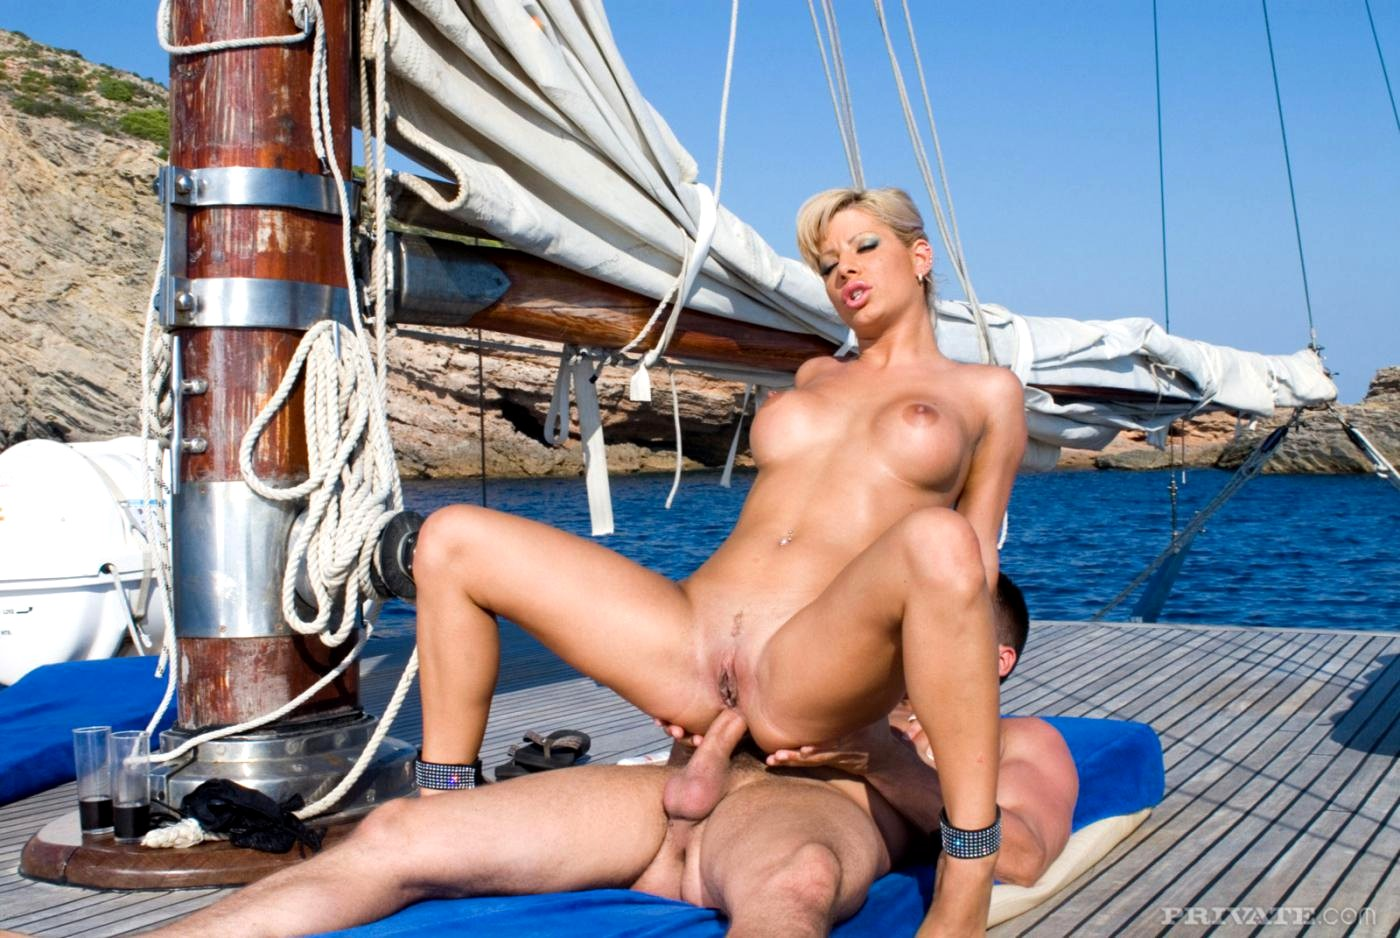 Sex on sailboat video, real indian sex videos